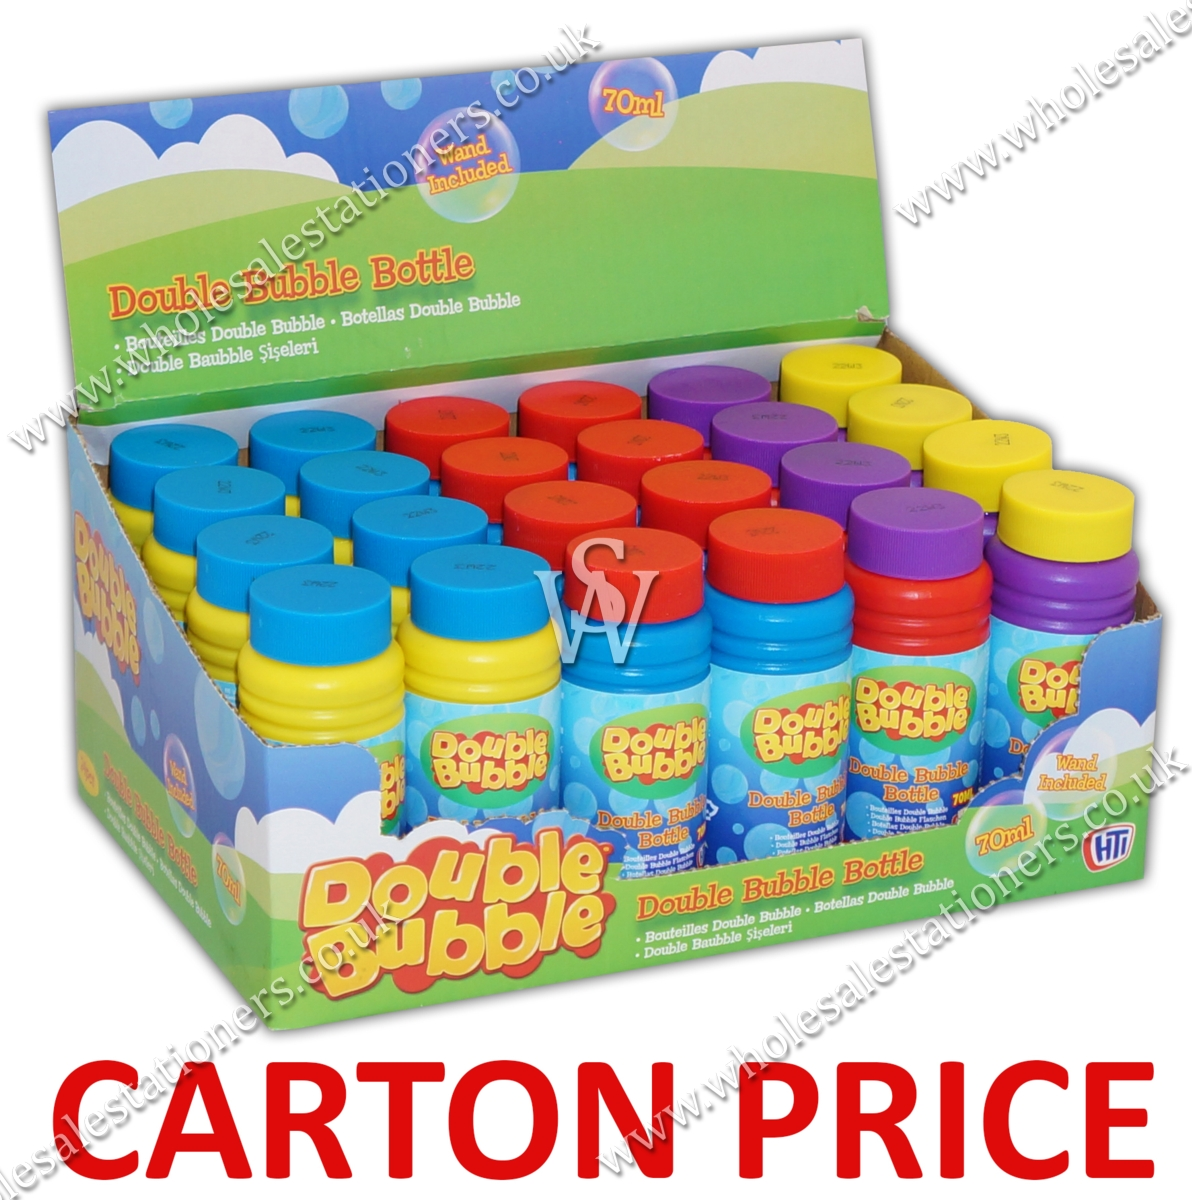 BUBBLE TUBS,70ml CDU (Carton Price,6x24pc)